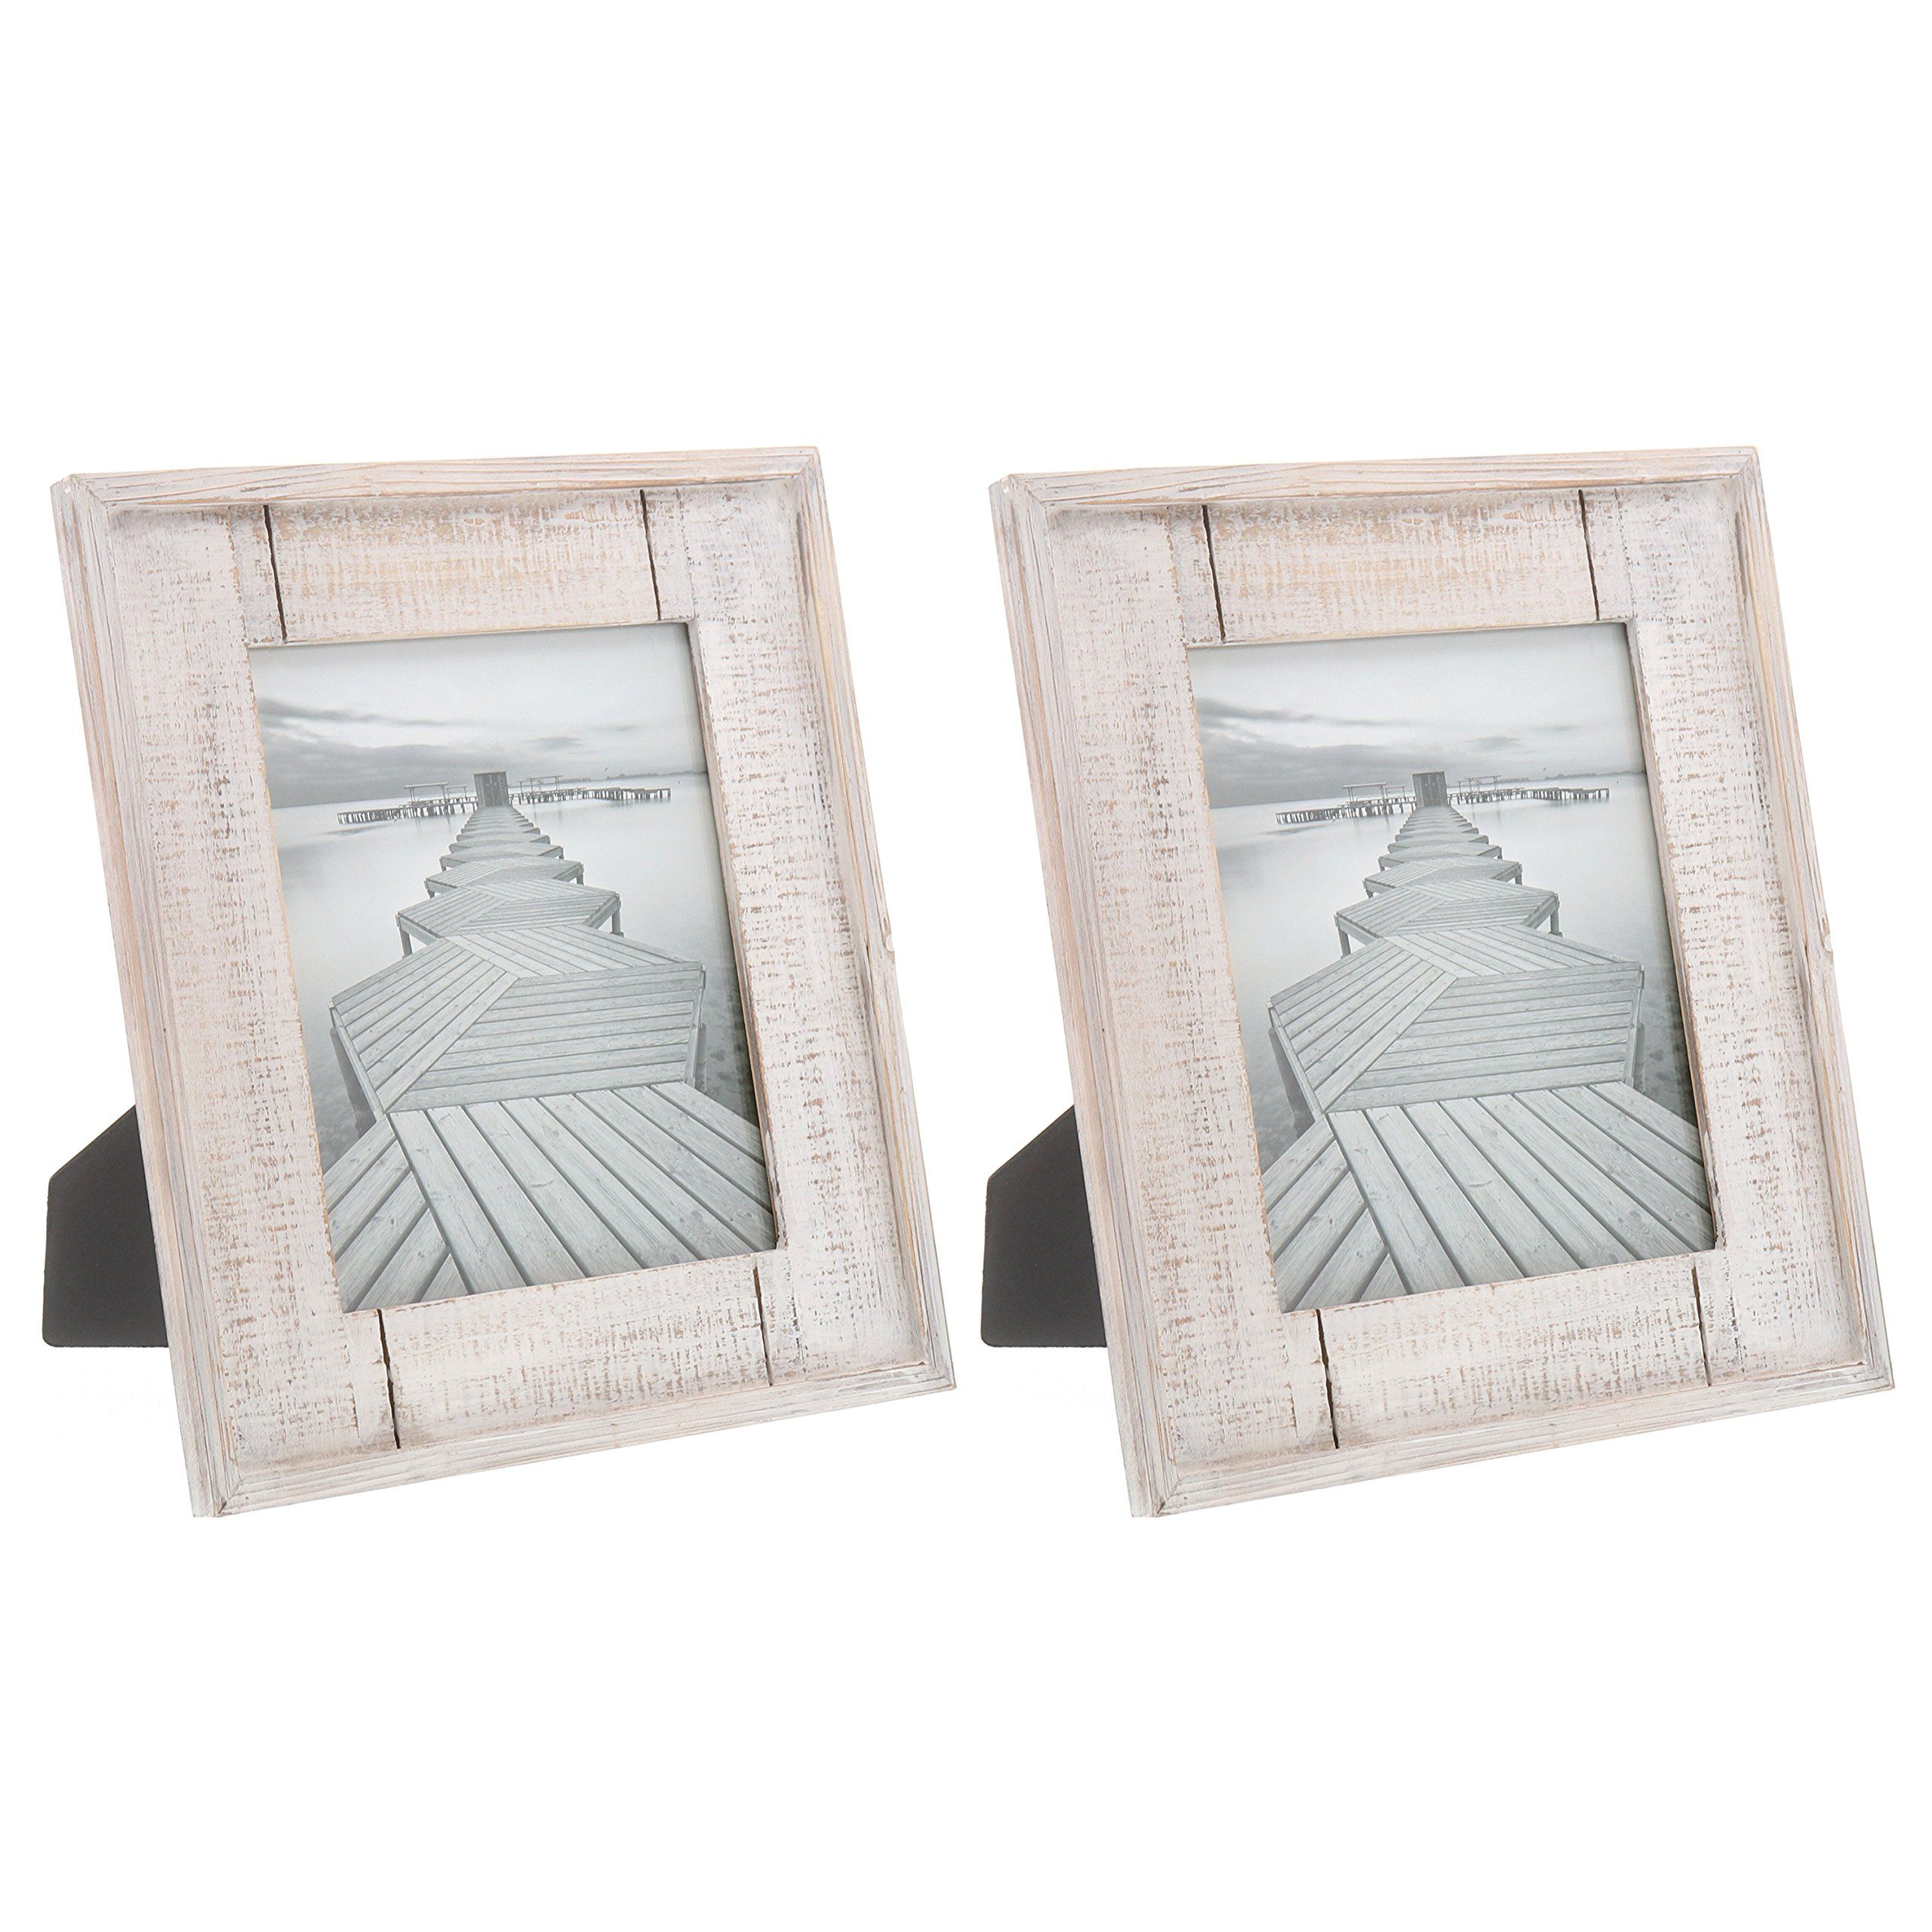 Barnyard Designs Rustic White Distressed Picture Frame 6 Frames 2x 4 X 6 5 X 7 8 X 10 Bundle In 2020 Distressed Picture Frames Wood Photo Frame Photo On Wood